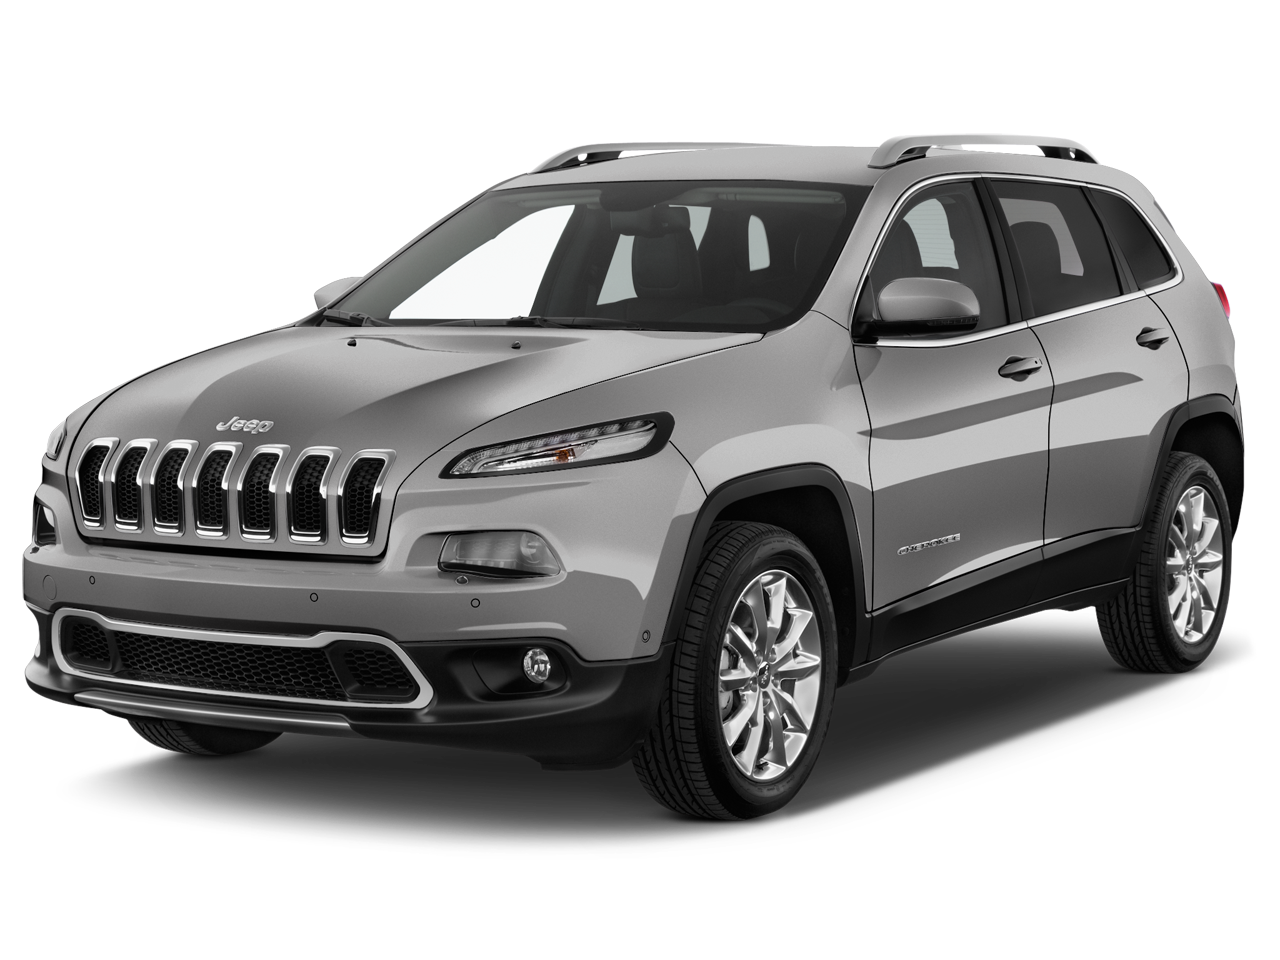 new 2017 jeep cherokee quirk chrysler jeep near boston ma. Black Bedroom Furniture Sets. Home Design Ideas